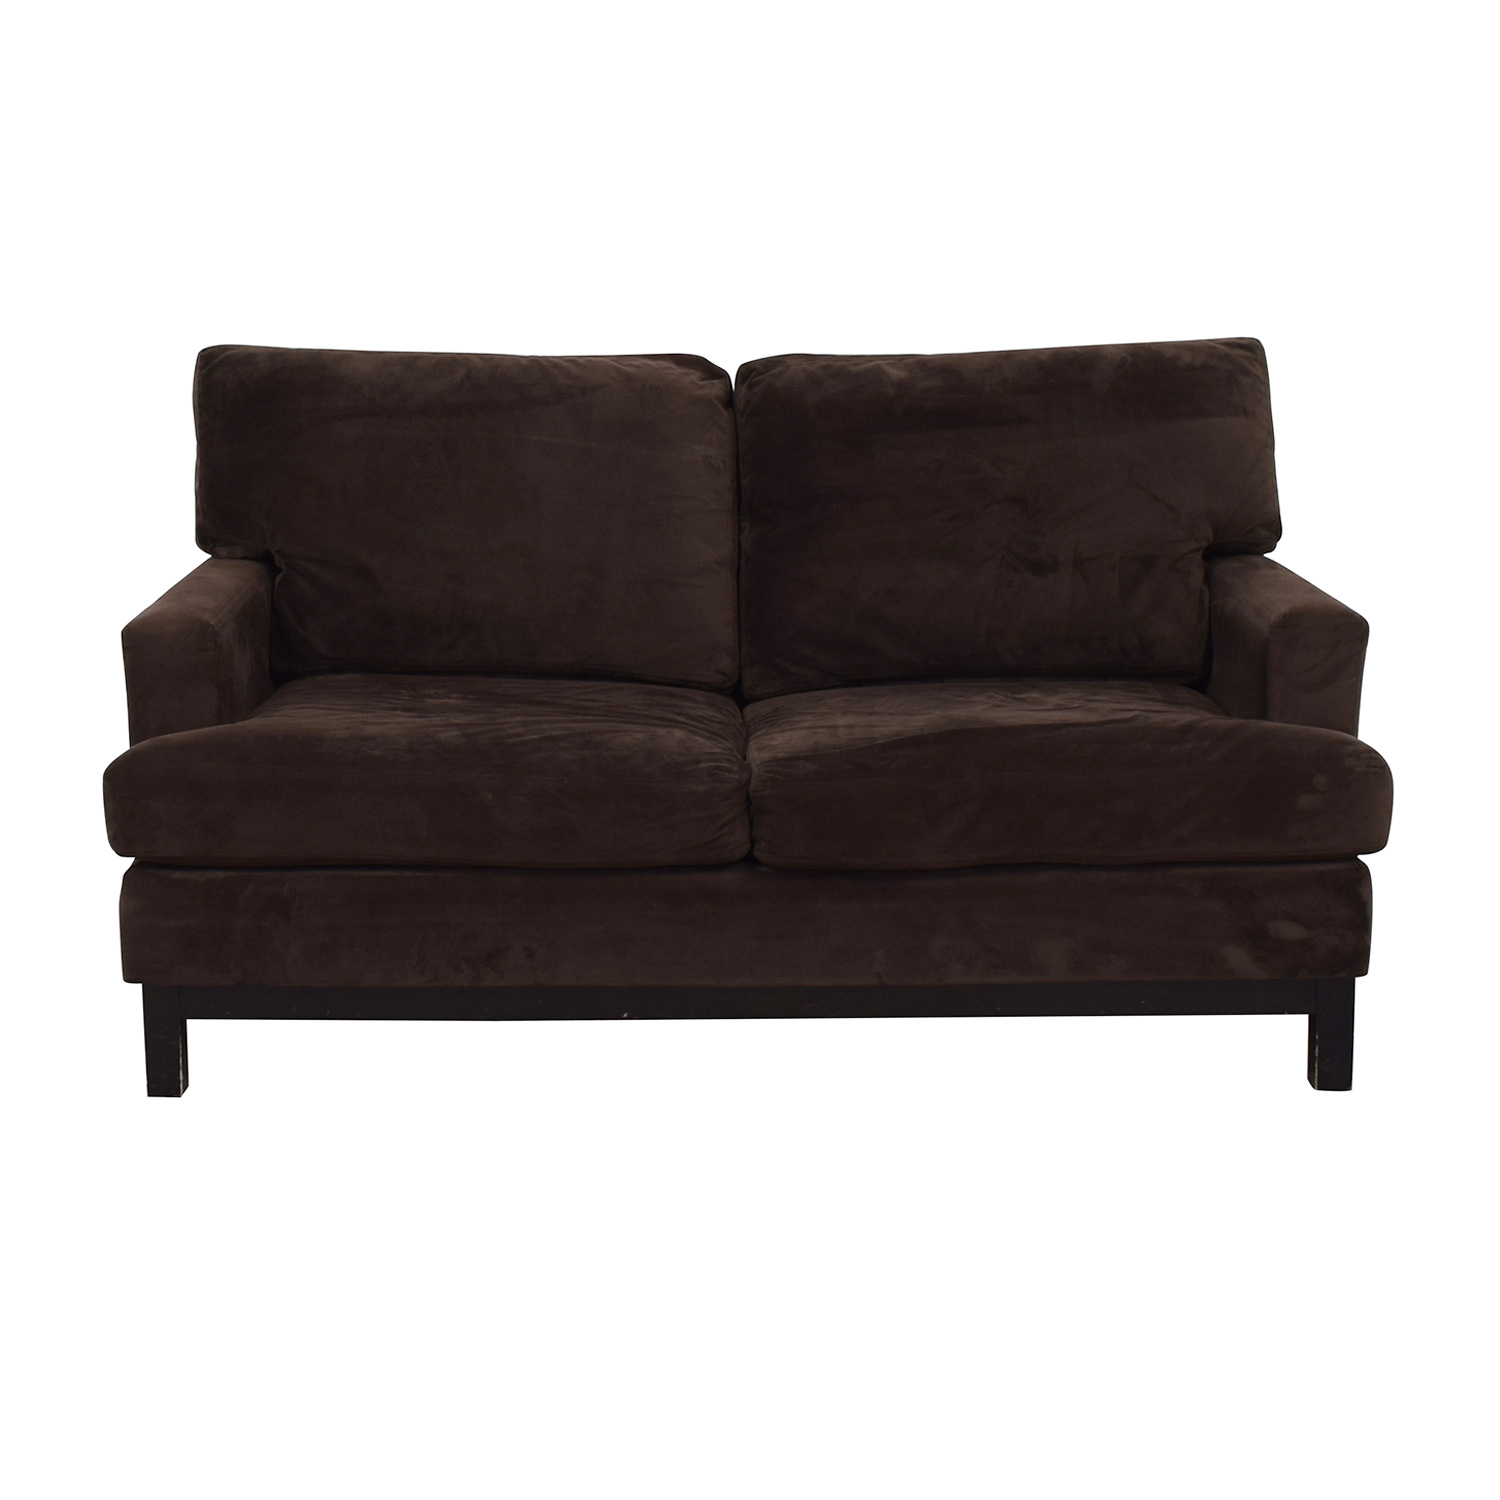 Mitchell Gold + Bob Williams Brown Velvet Loveseat sale